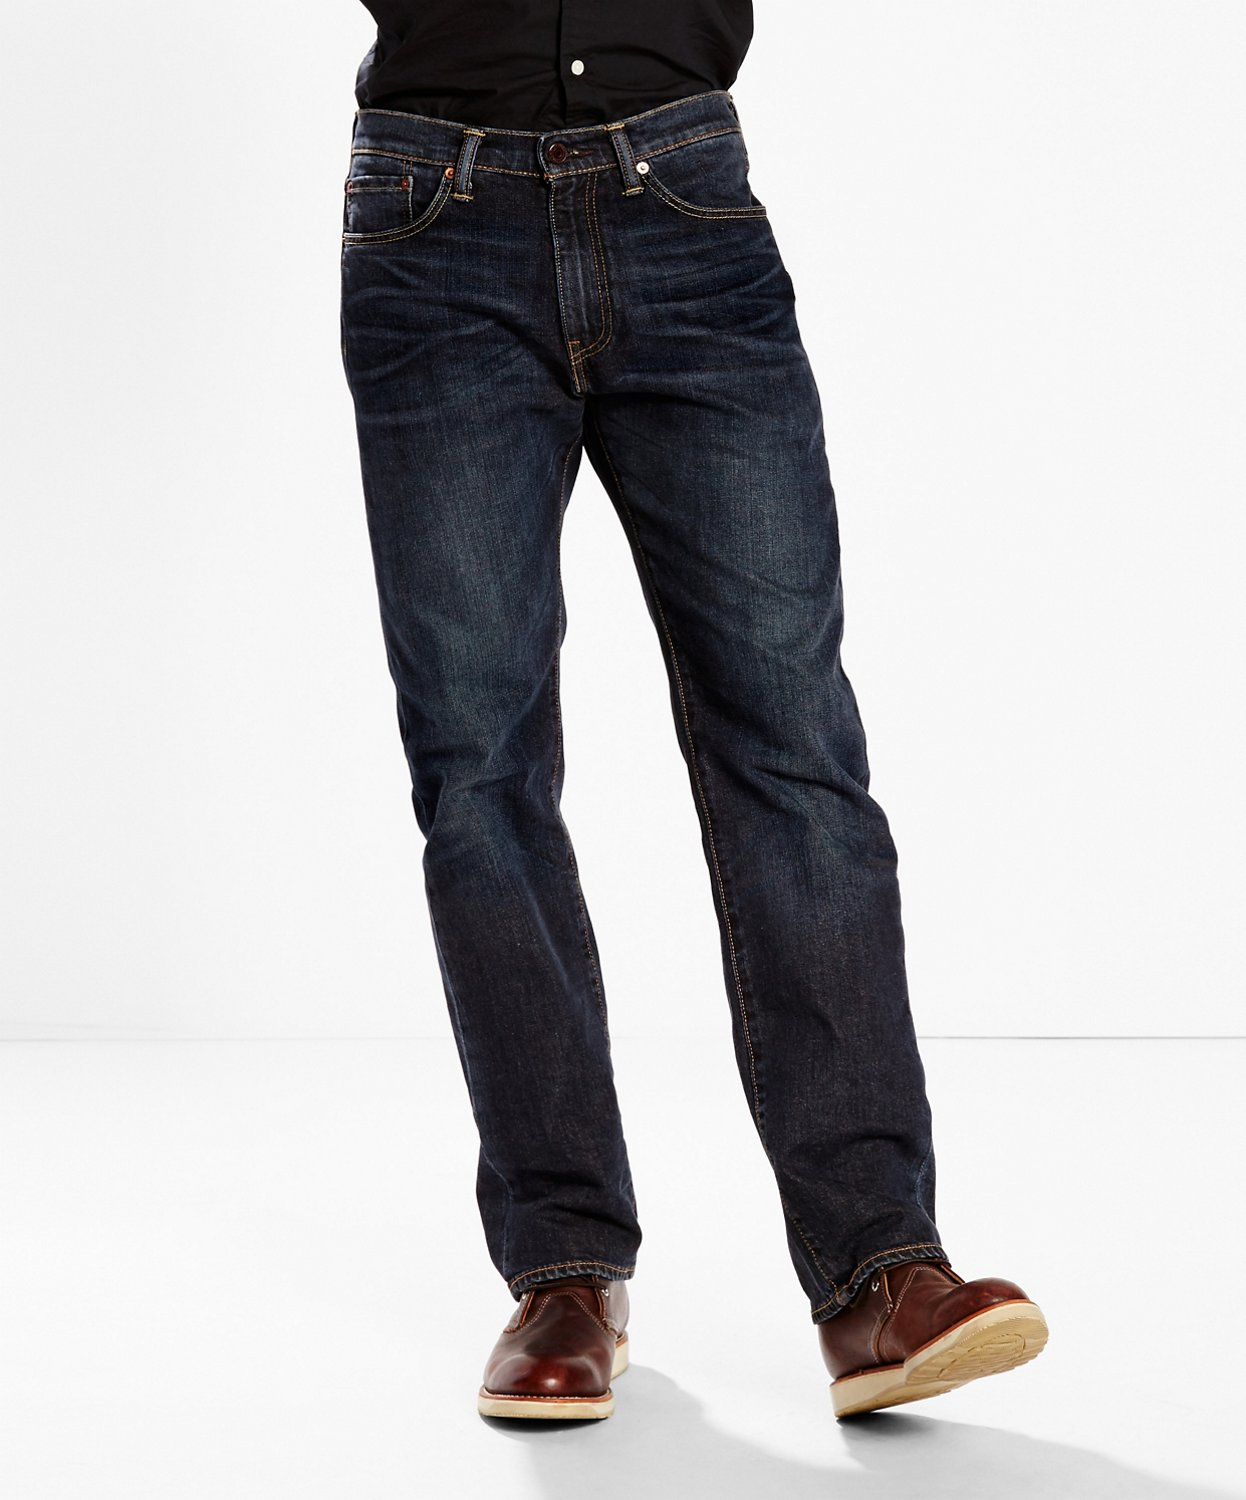 0905ba0ac680 Levi s Men s 505 Regular Fit Jean